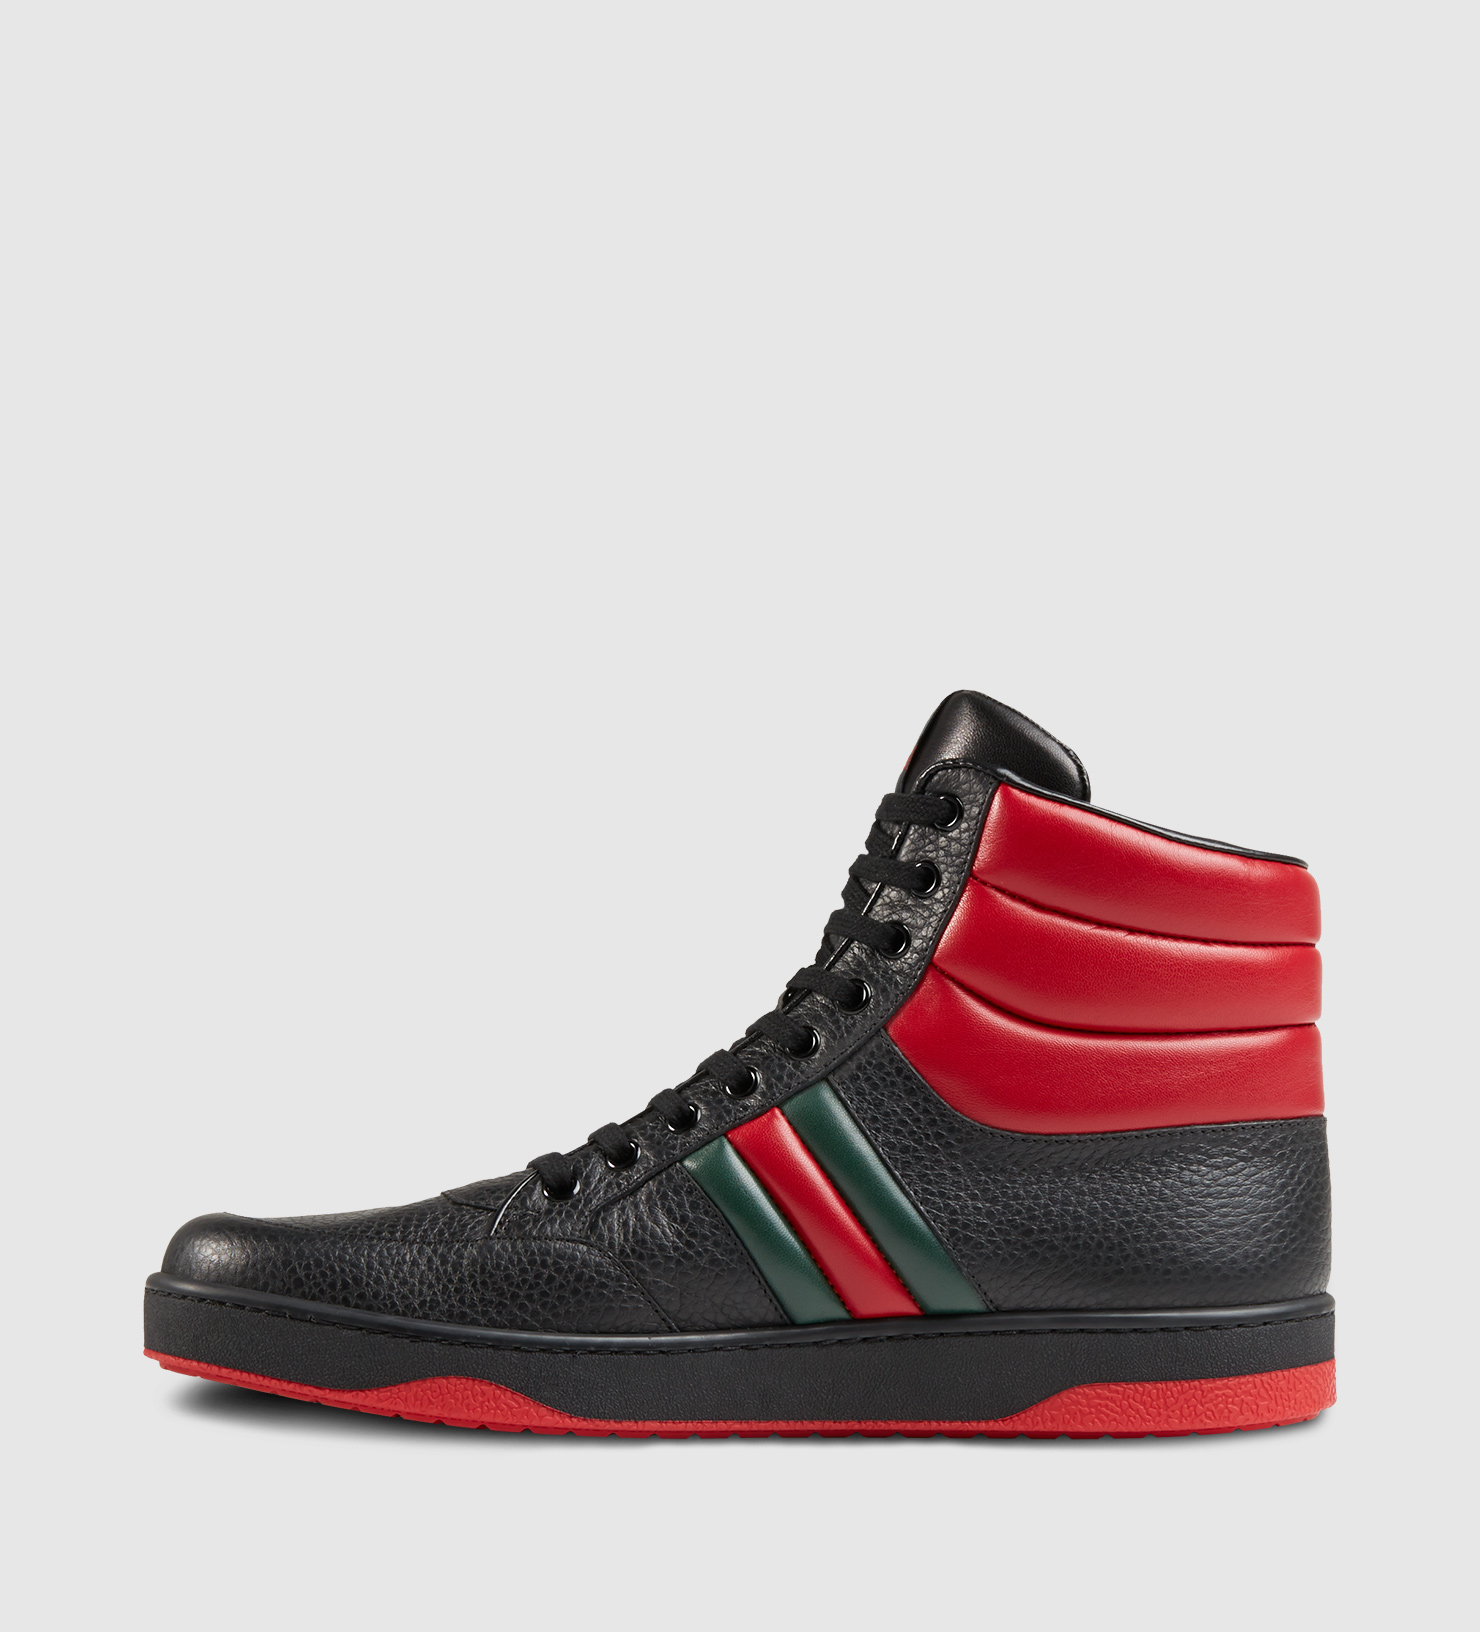 8cc38c5cb Gucci Contrast Padded Leather High-top Sneaker in Red for Men - Lyst